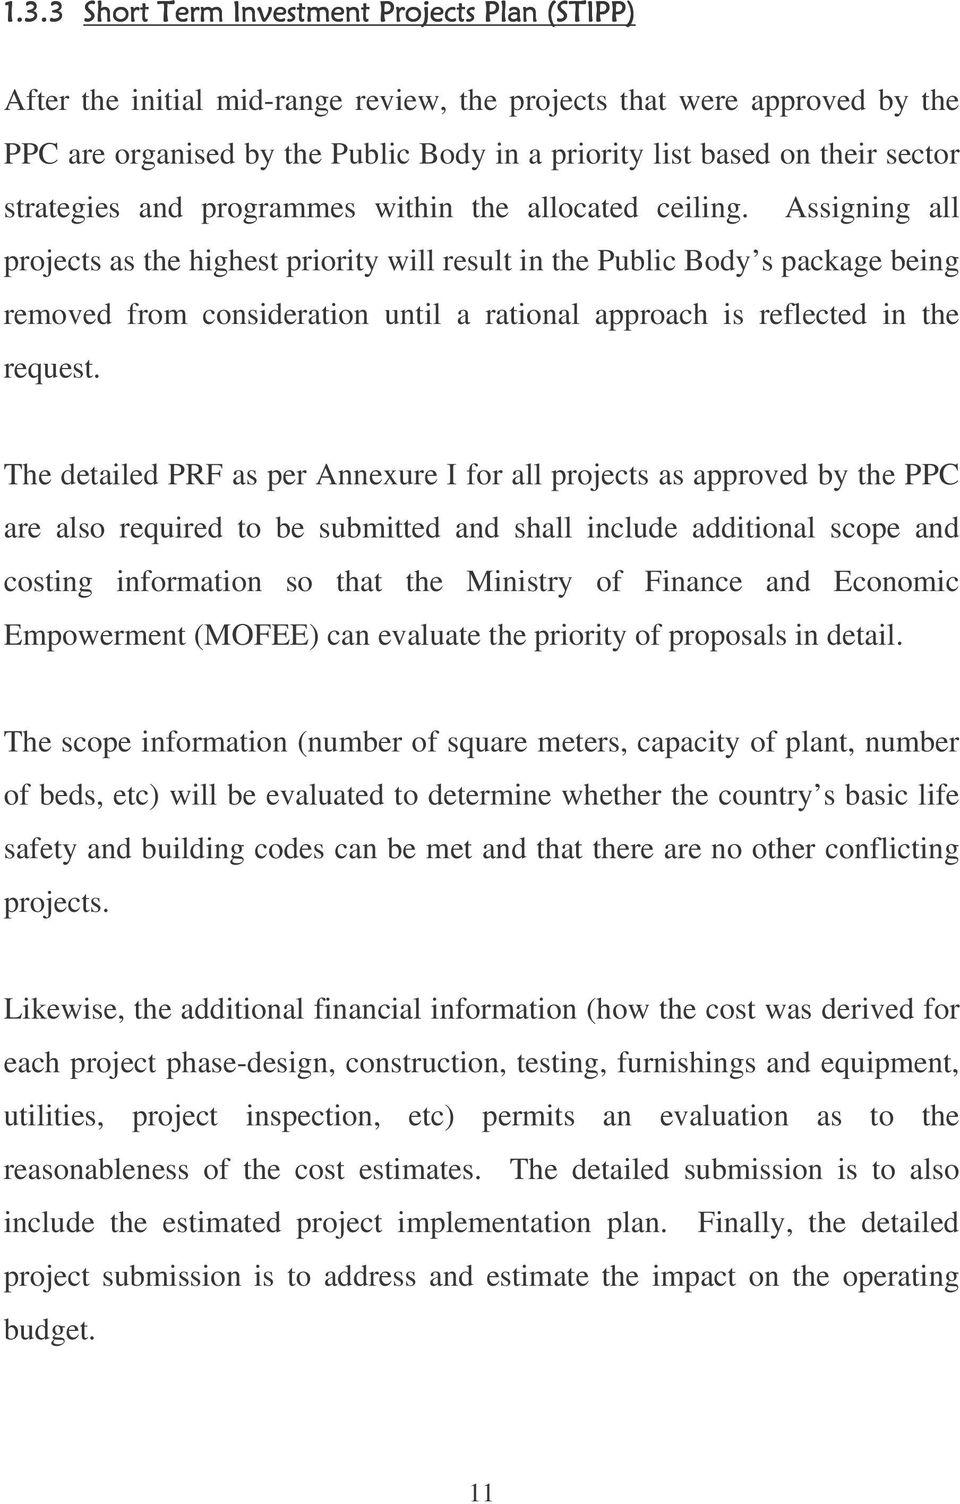 The detailed PRF as per Annexure I for all projects as approved by the PPC are also required to be submitted and shall include additional scope and costing information so that the Ministry of Finance